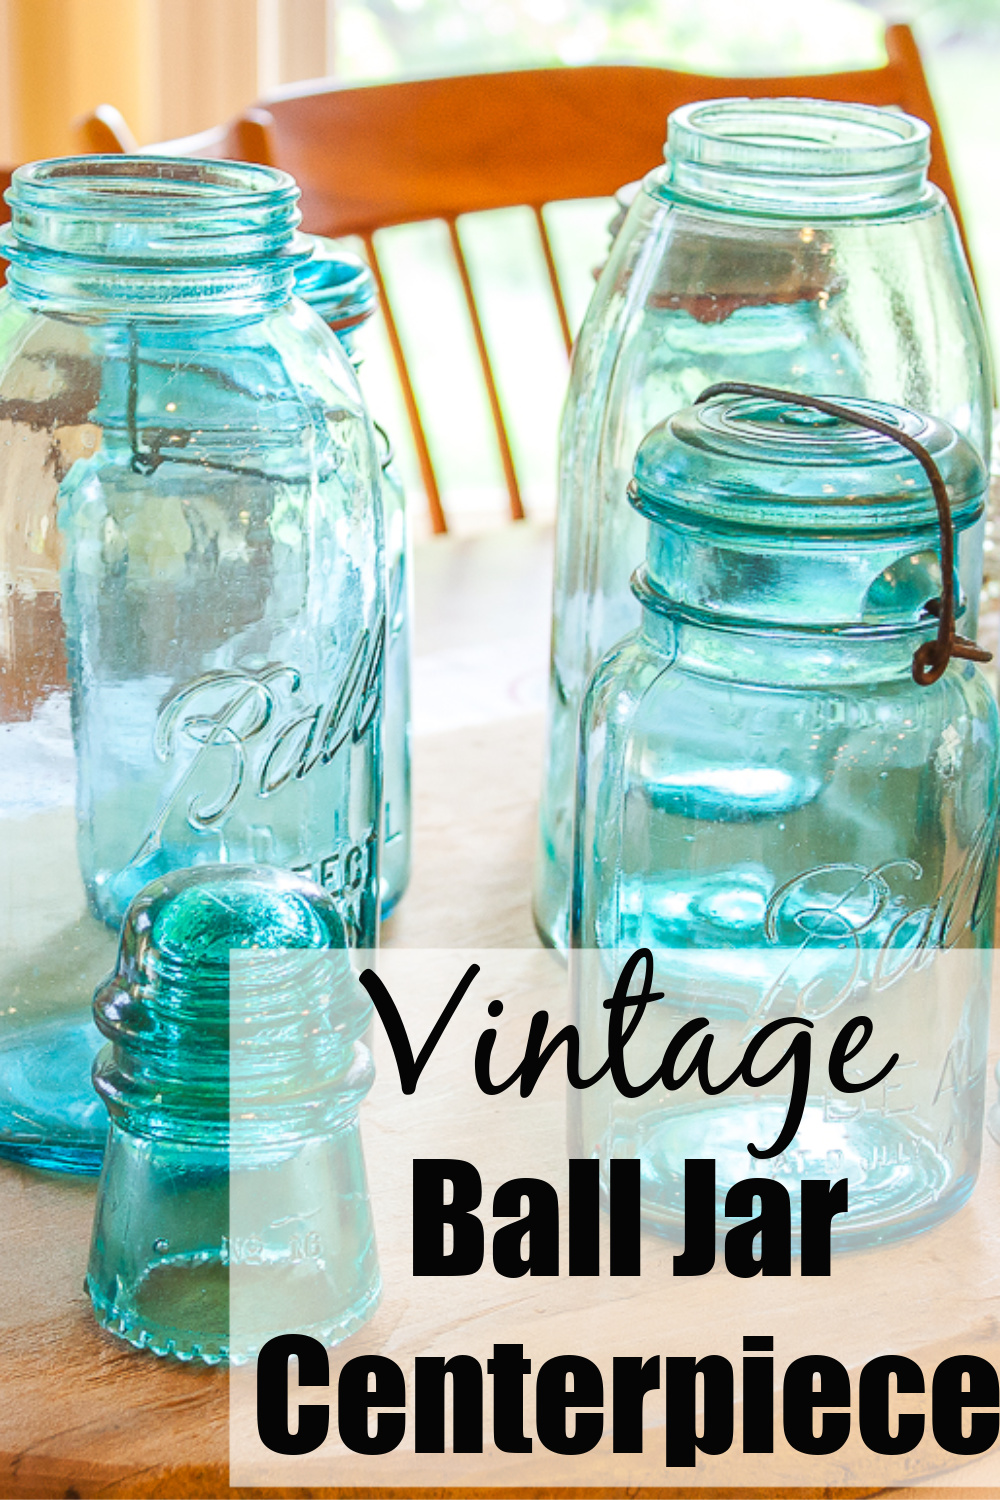 Vintage Ball Jar Centerpiece - Create a beautiful table centerpiece with vintage ball jars and insulators. #vintagecenterpiece #vintageballjars #vintagemasonjars #masonjarideaas via @spaula